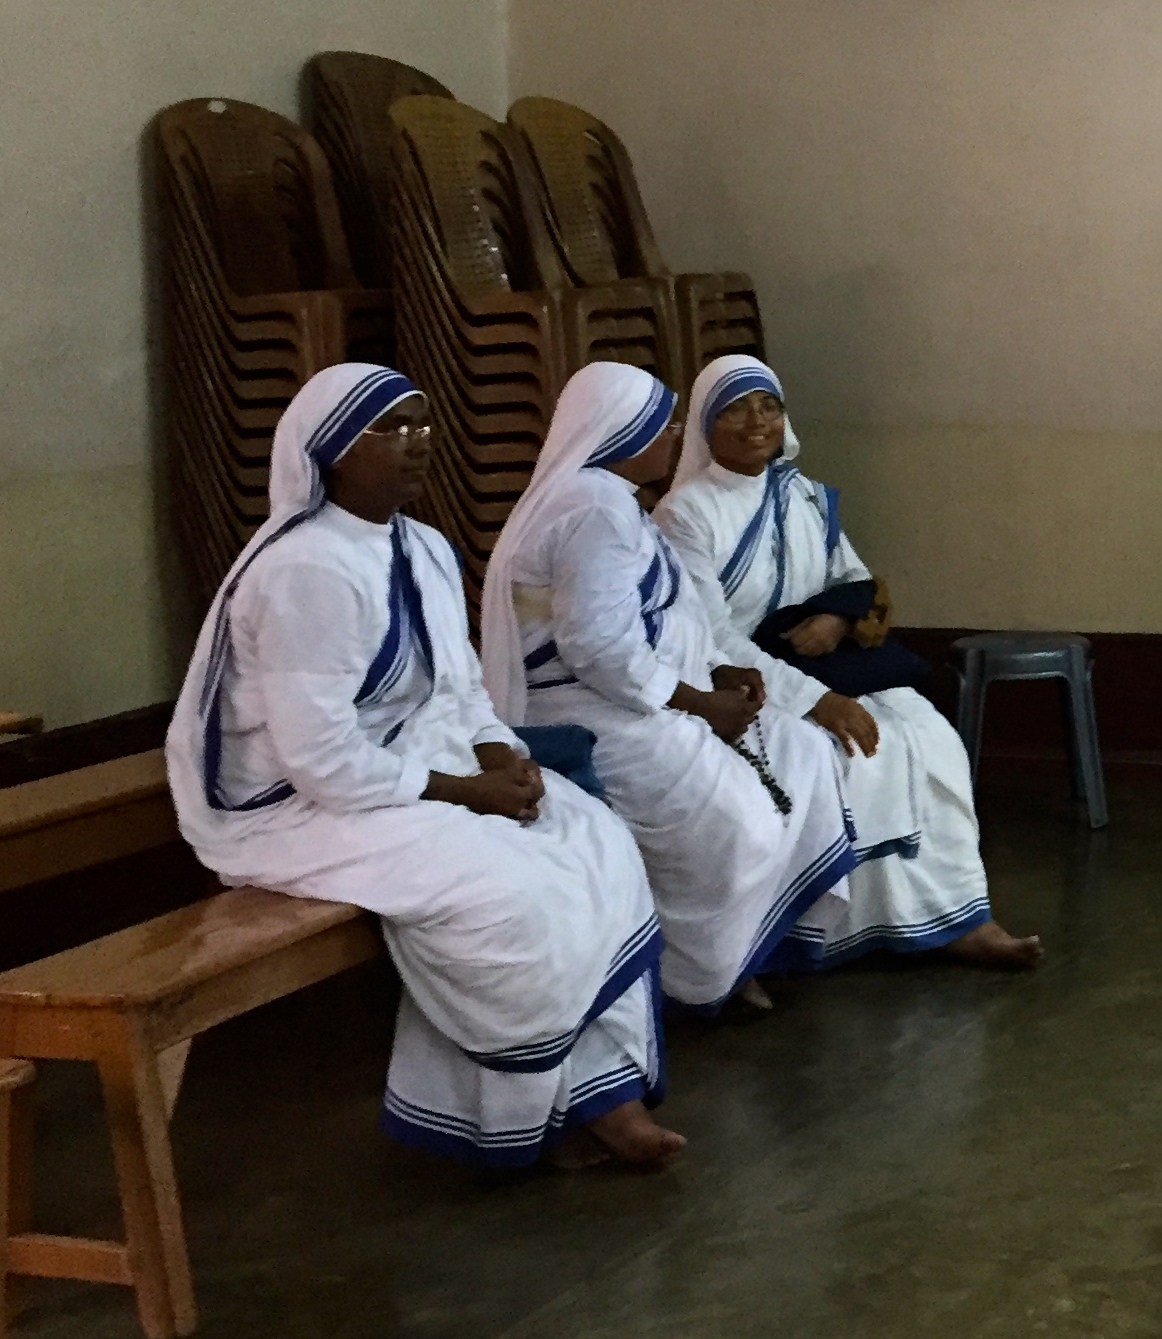 Sisters at the Order of the Missionaries of Charity, sitting near the tomb of Mother Teresa in Kolkata